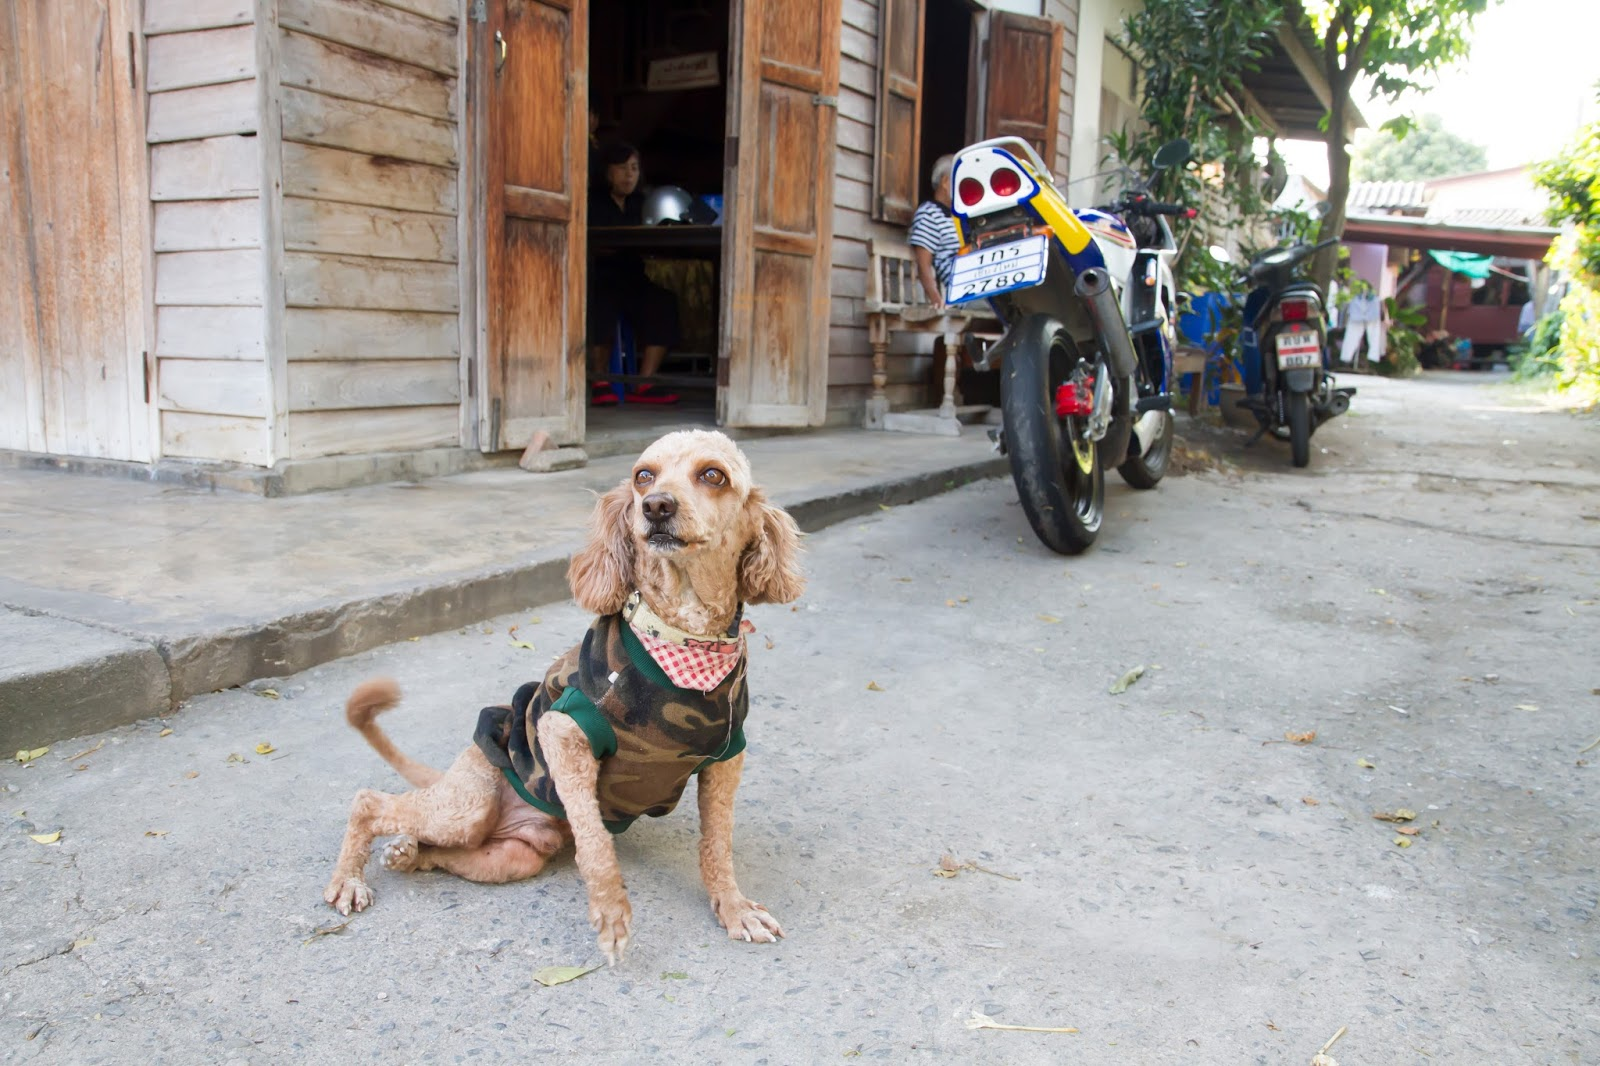 injured dog in the backstreets of Chiang Mai's old town